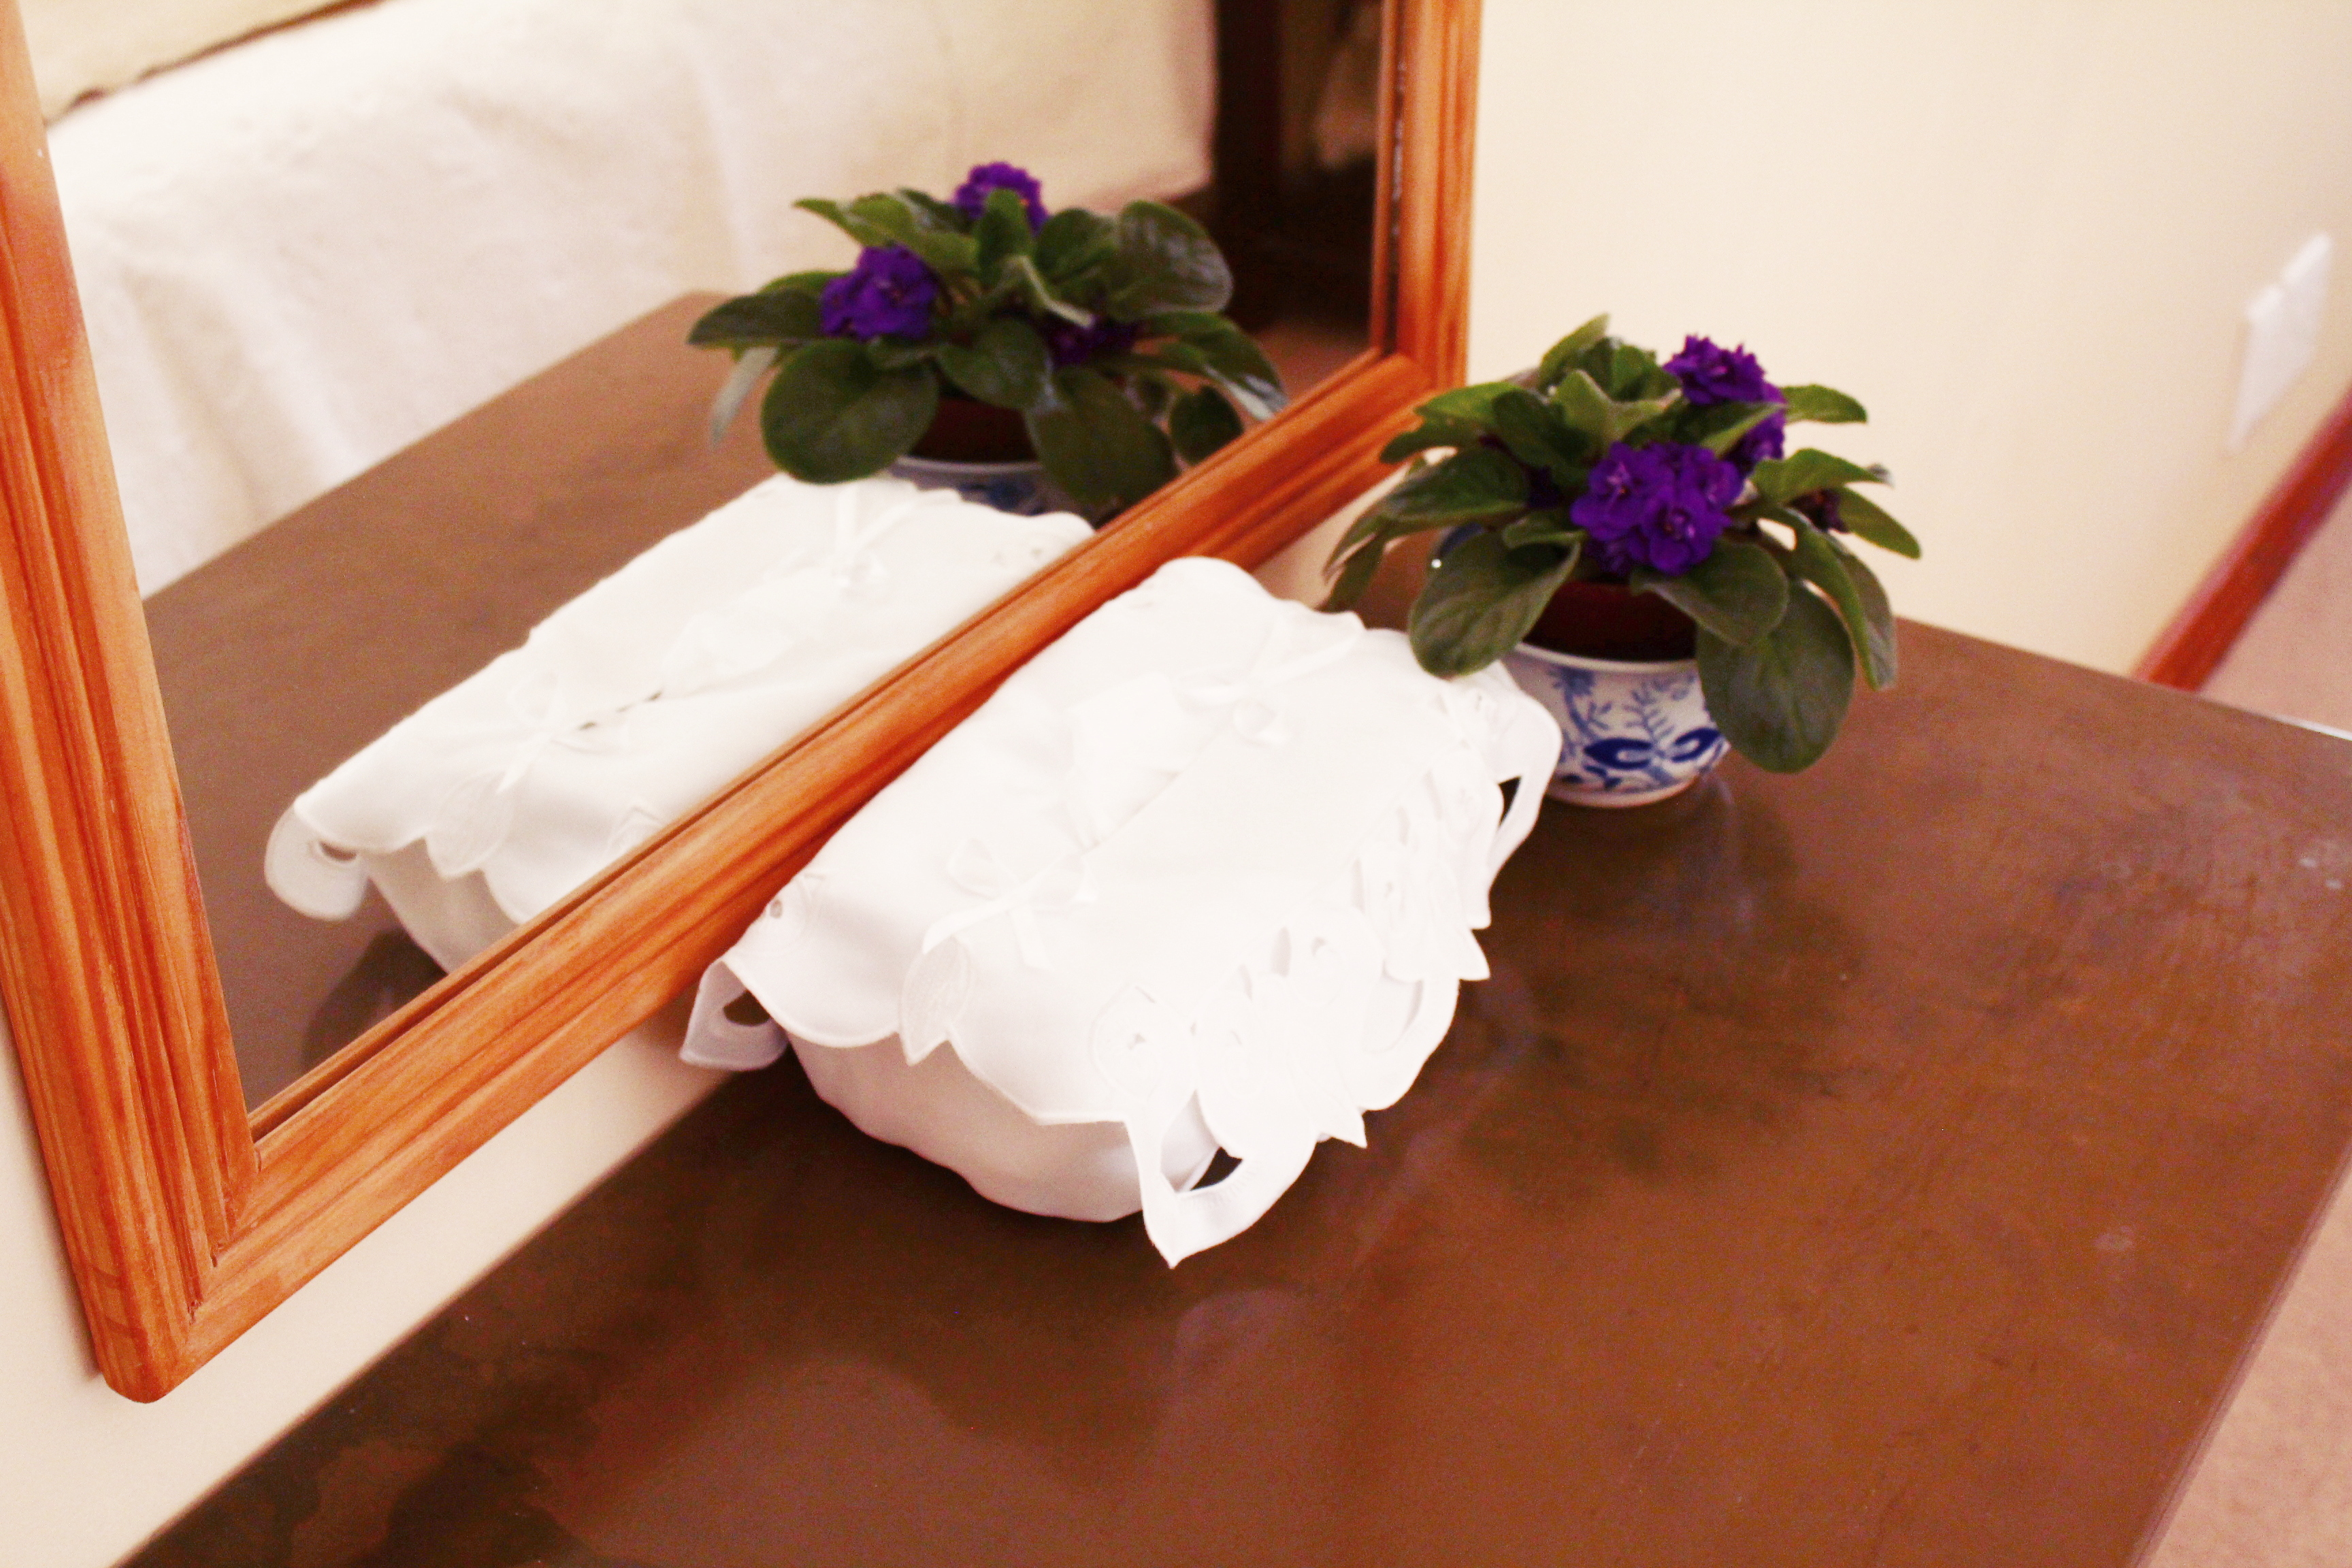 Mirror and a potplant on a slat table with tissues